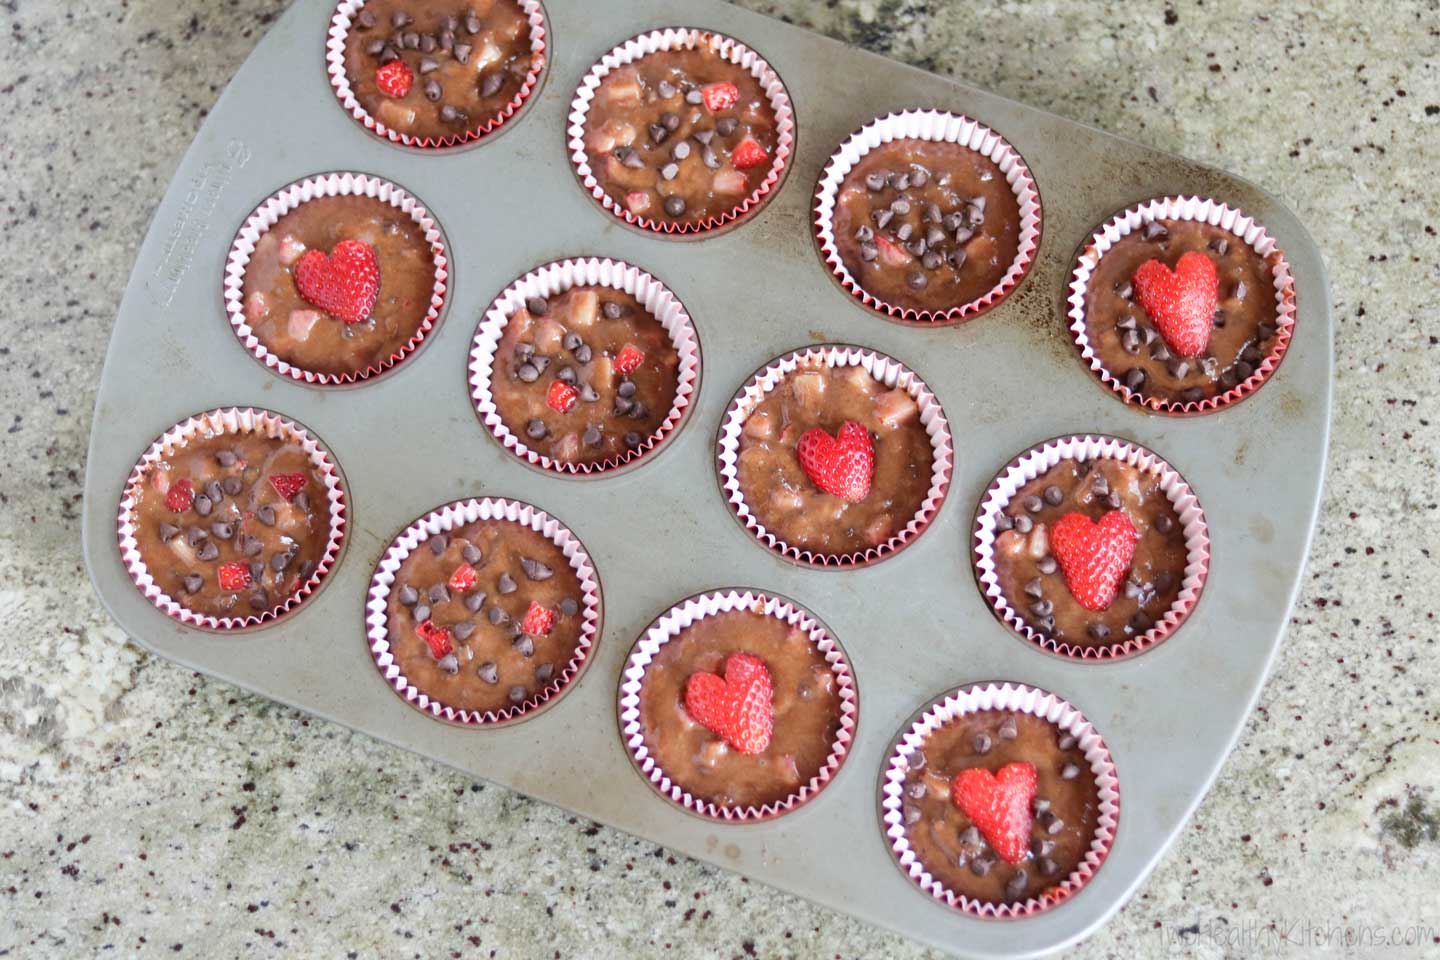 a pan of muffins waiting to be baked, with heart-shaped strawberries decorating the tops